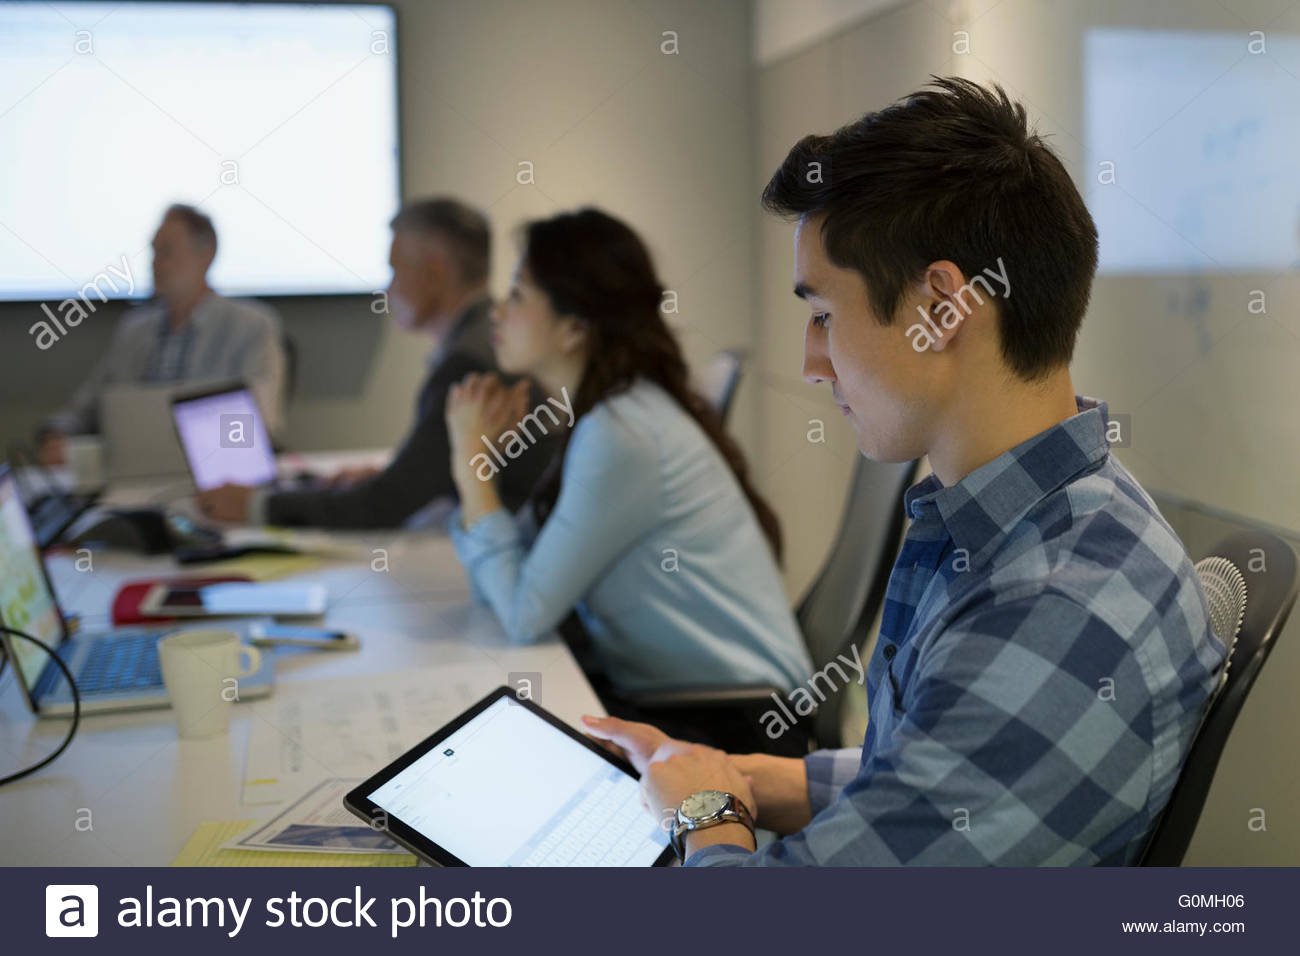 Businessman using digital tablet in conference room meeting Photo Stock